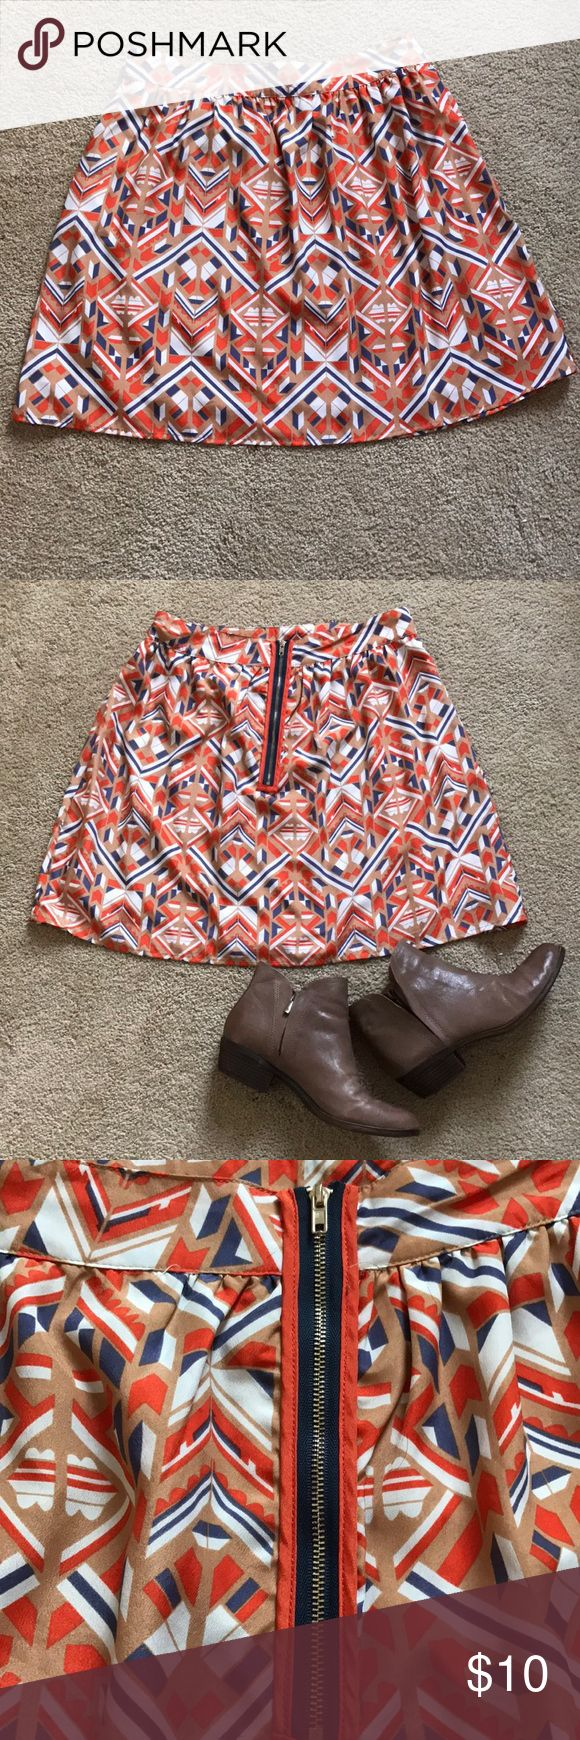 Aztec print skirt, size M Super cute Aztec print skirt in shades of tan, white, orange, & deep blue. Bought at Francesca's but never wore. New condition without tags. Zippered back. Hits a few inches above knees. Skirts Midi